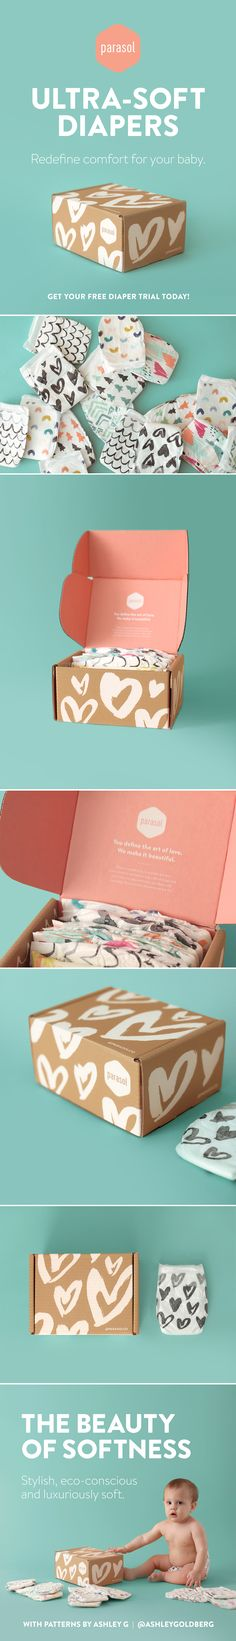 Parasol Co Diaper Subscription Free Trial Box on Behance PD